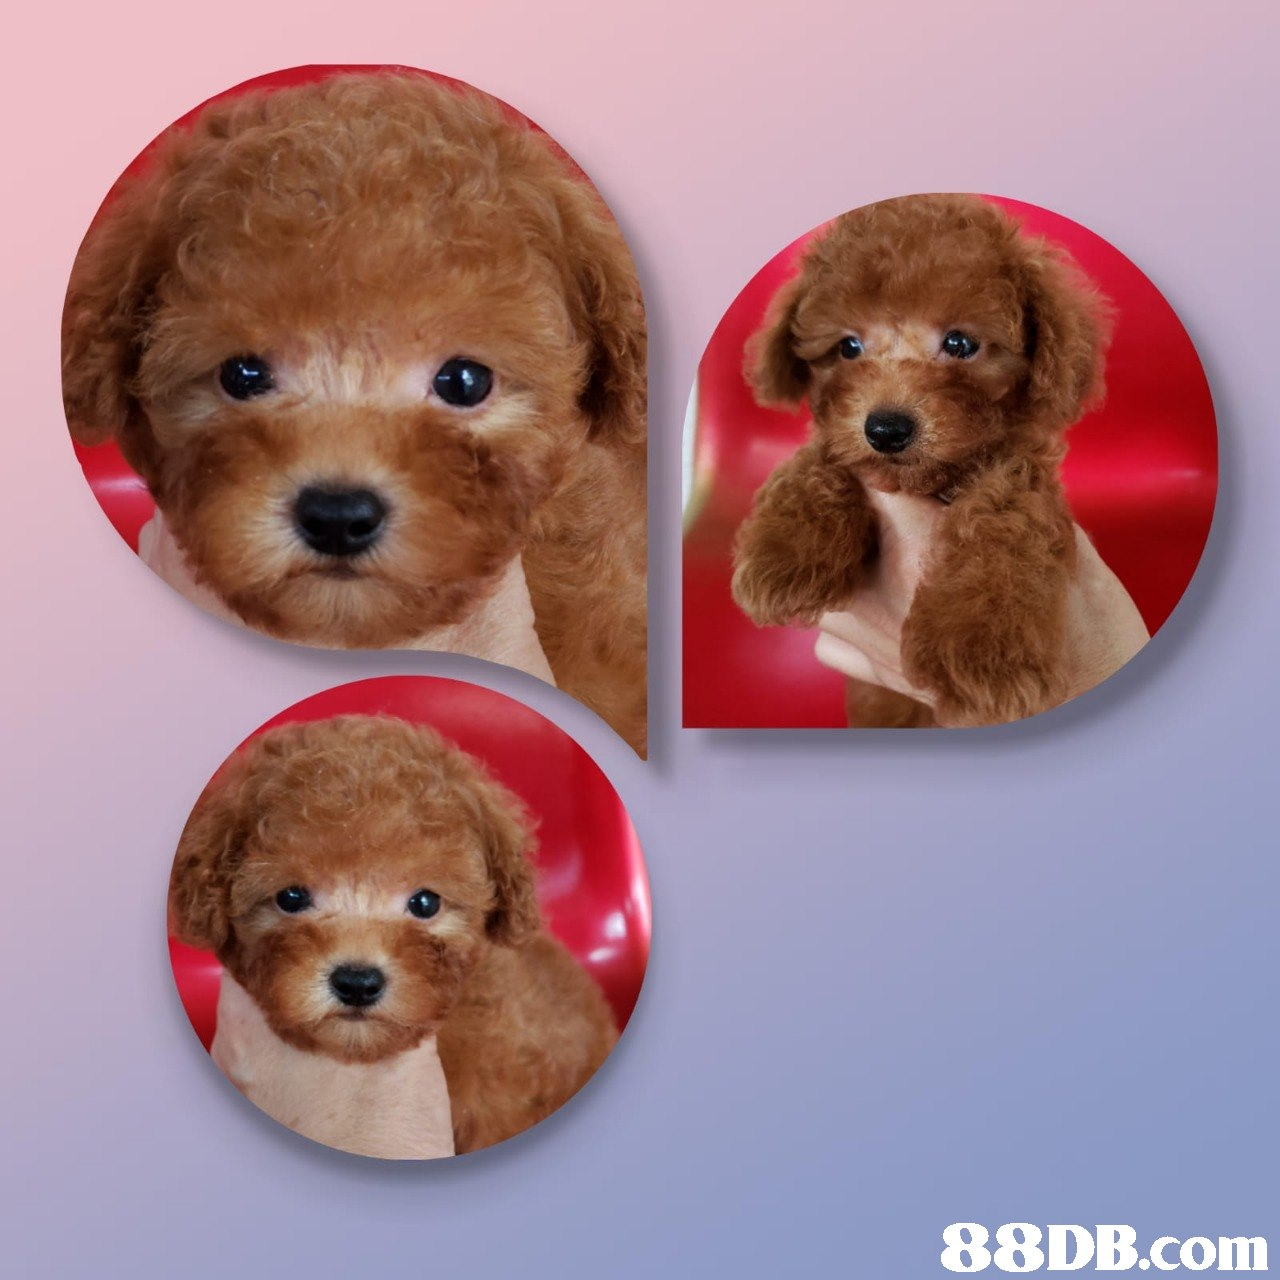 dog,dog like mammal,dog breed,toy poodle,miniature poodle